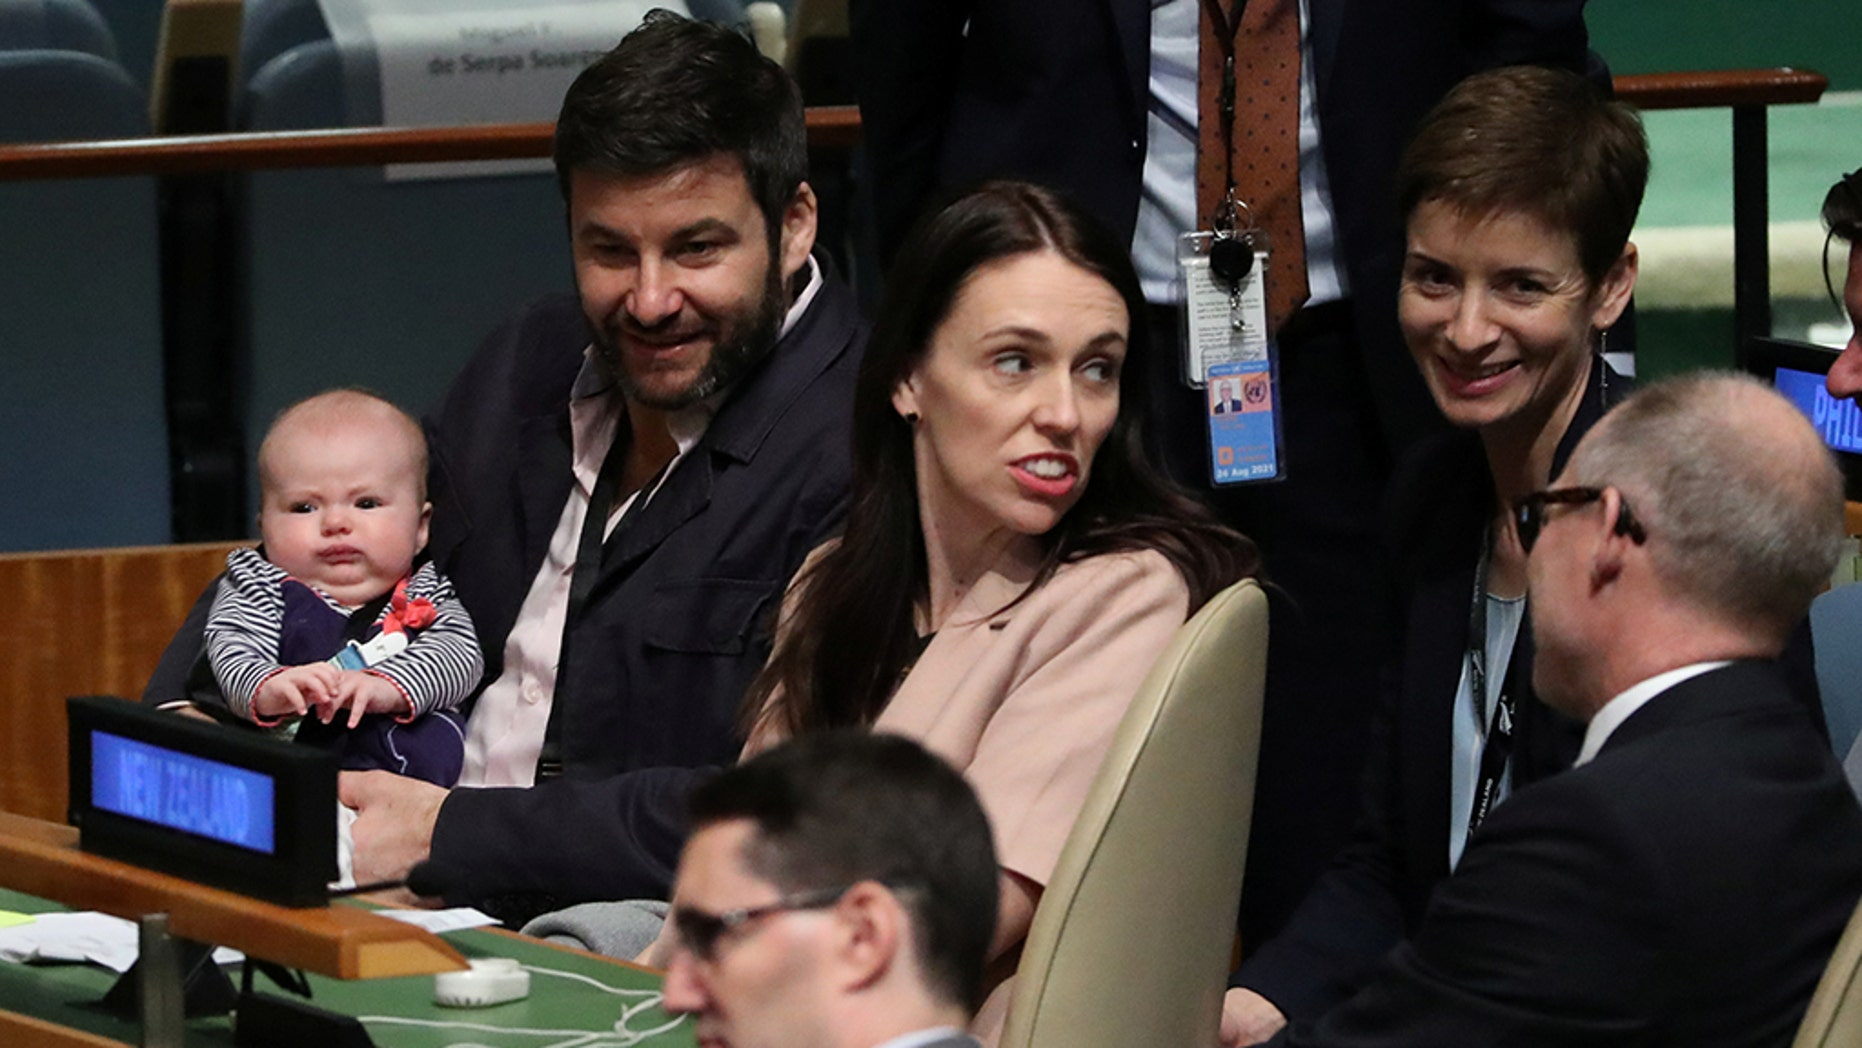 New Zealand Prime Minister Jacinda Ardern sits with her baby Neve before speaking at the Nelson Mandela Peace Summit during the 73rd United Nations General Assembly in New York, U.S., September 24, 2018. REUTERS/Carlo Allegri - RC1D451BD190